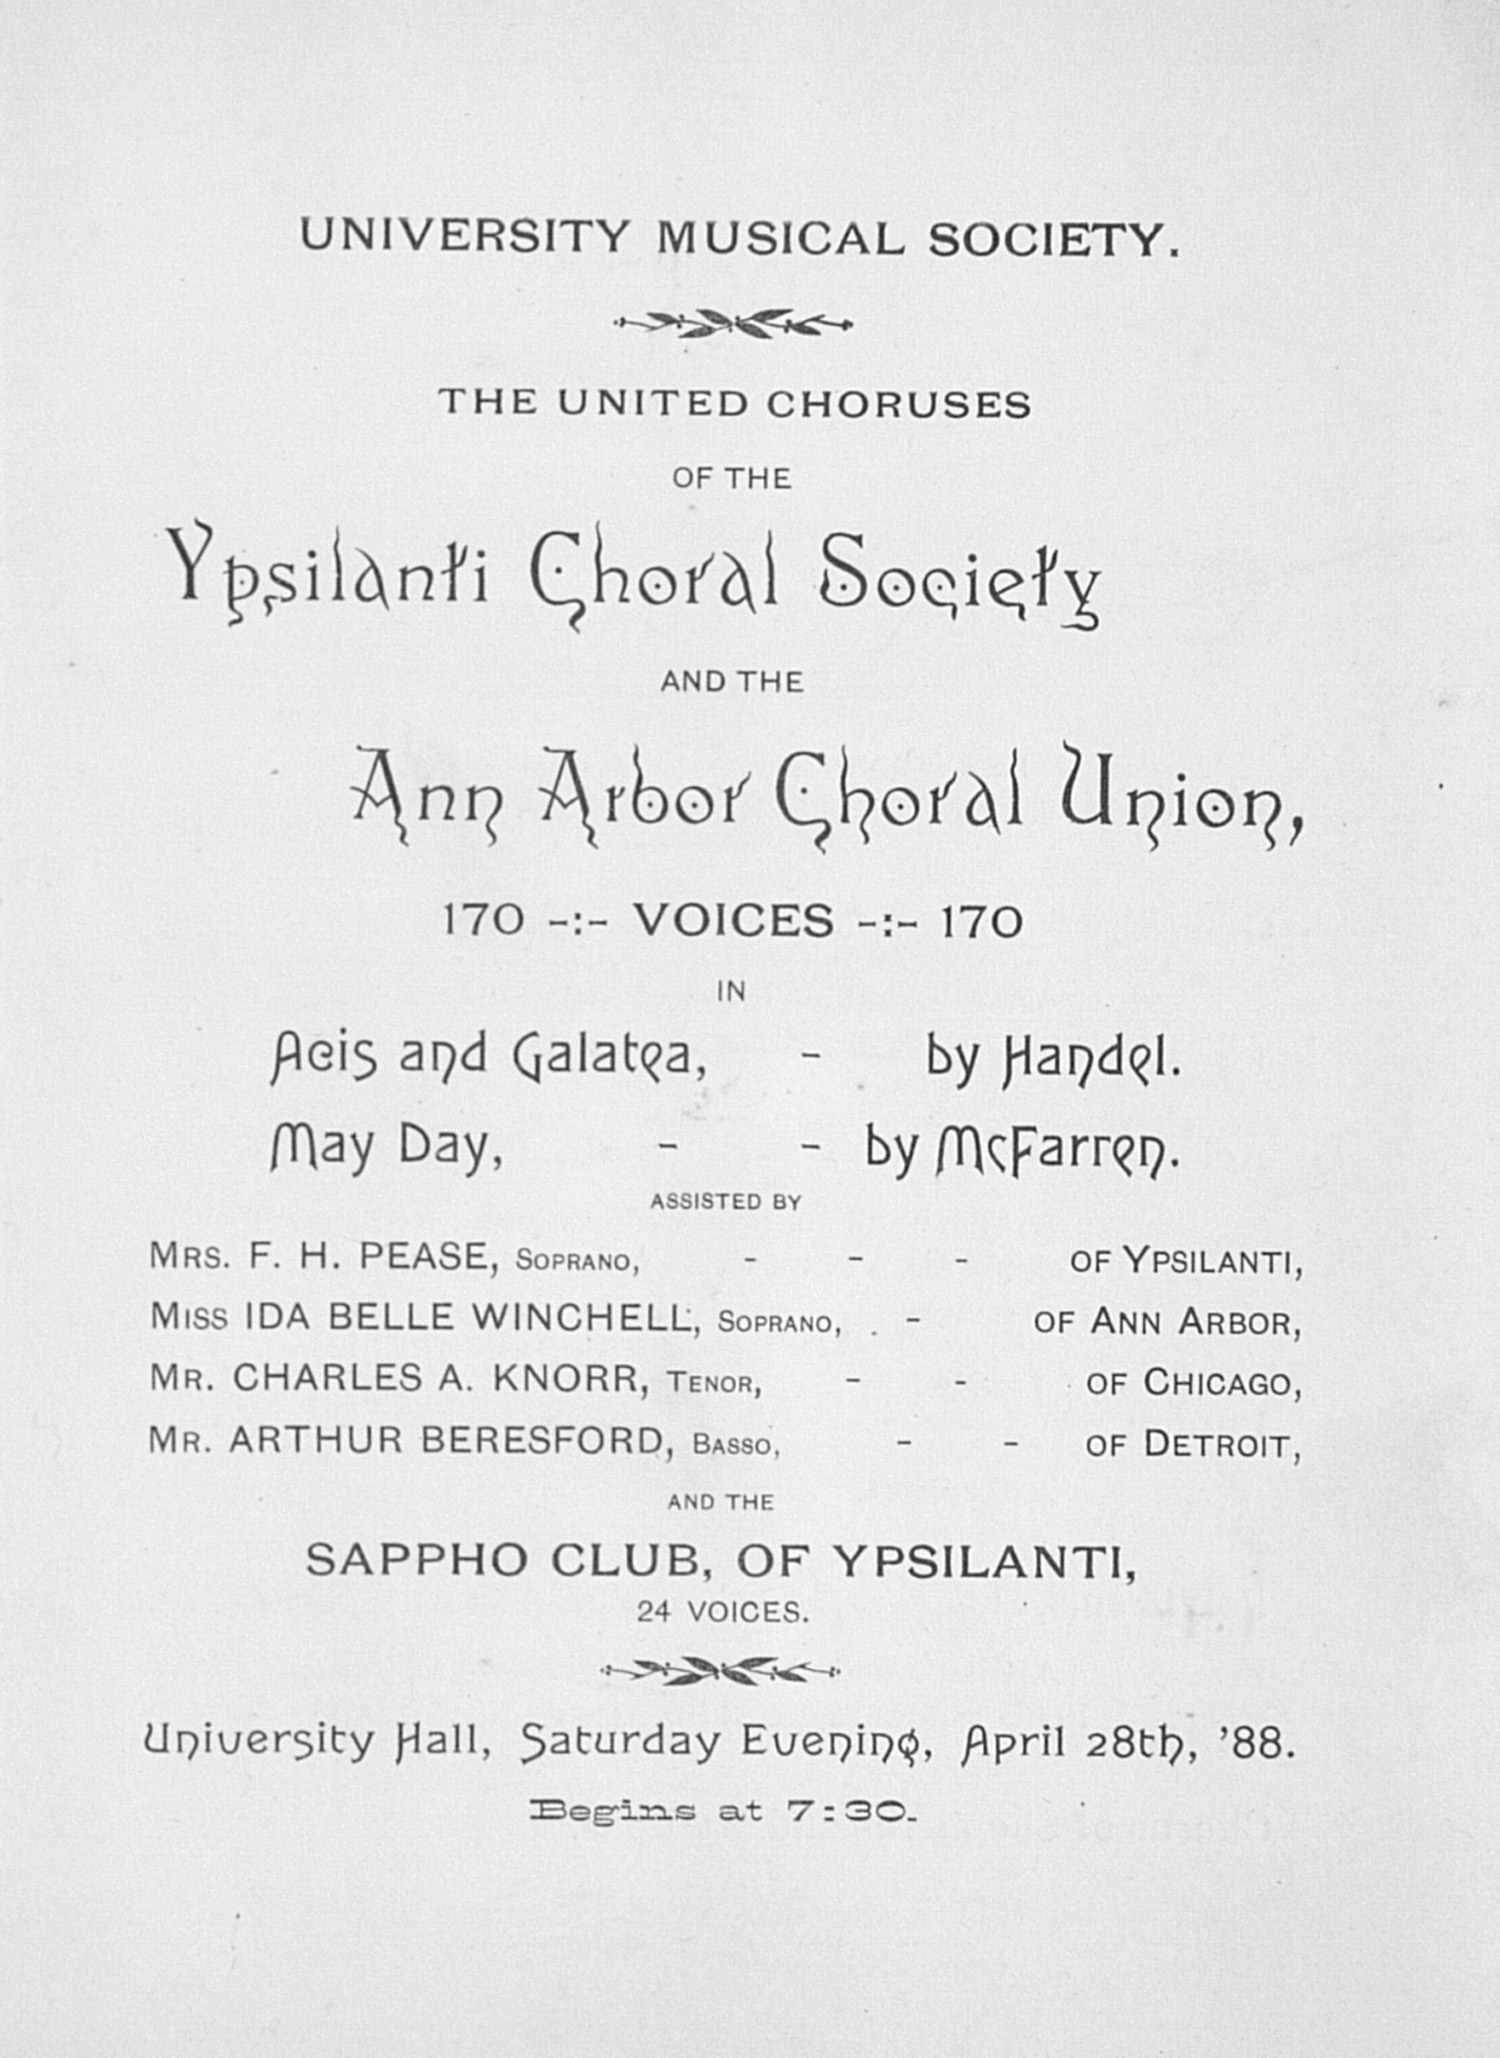 UMS Concert Program, April 28th, '88: Ann Arbor Choral Union --  image